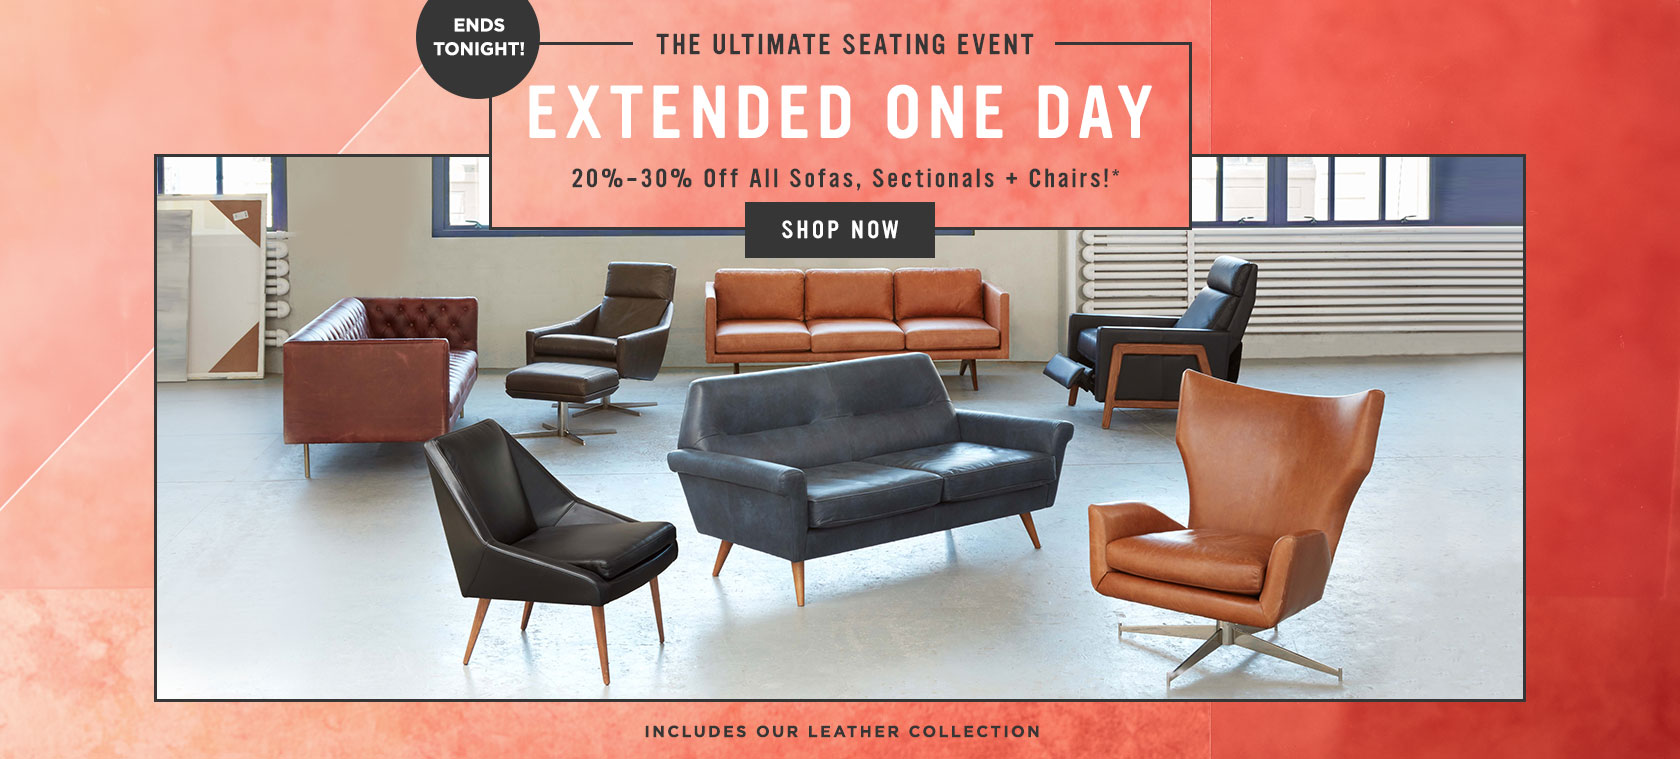 The Ultimate Seating Event Ends Tonight! 20-30% Off All Sofas, Sectionals, Chairs + More!